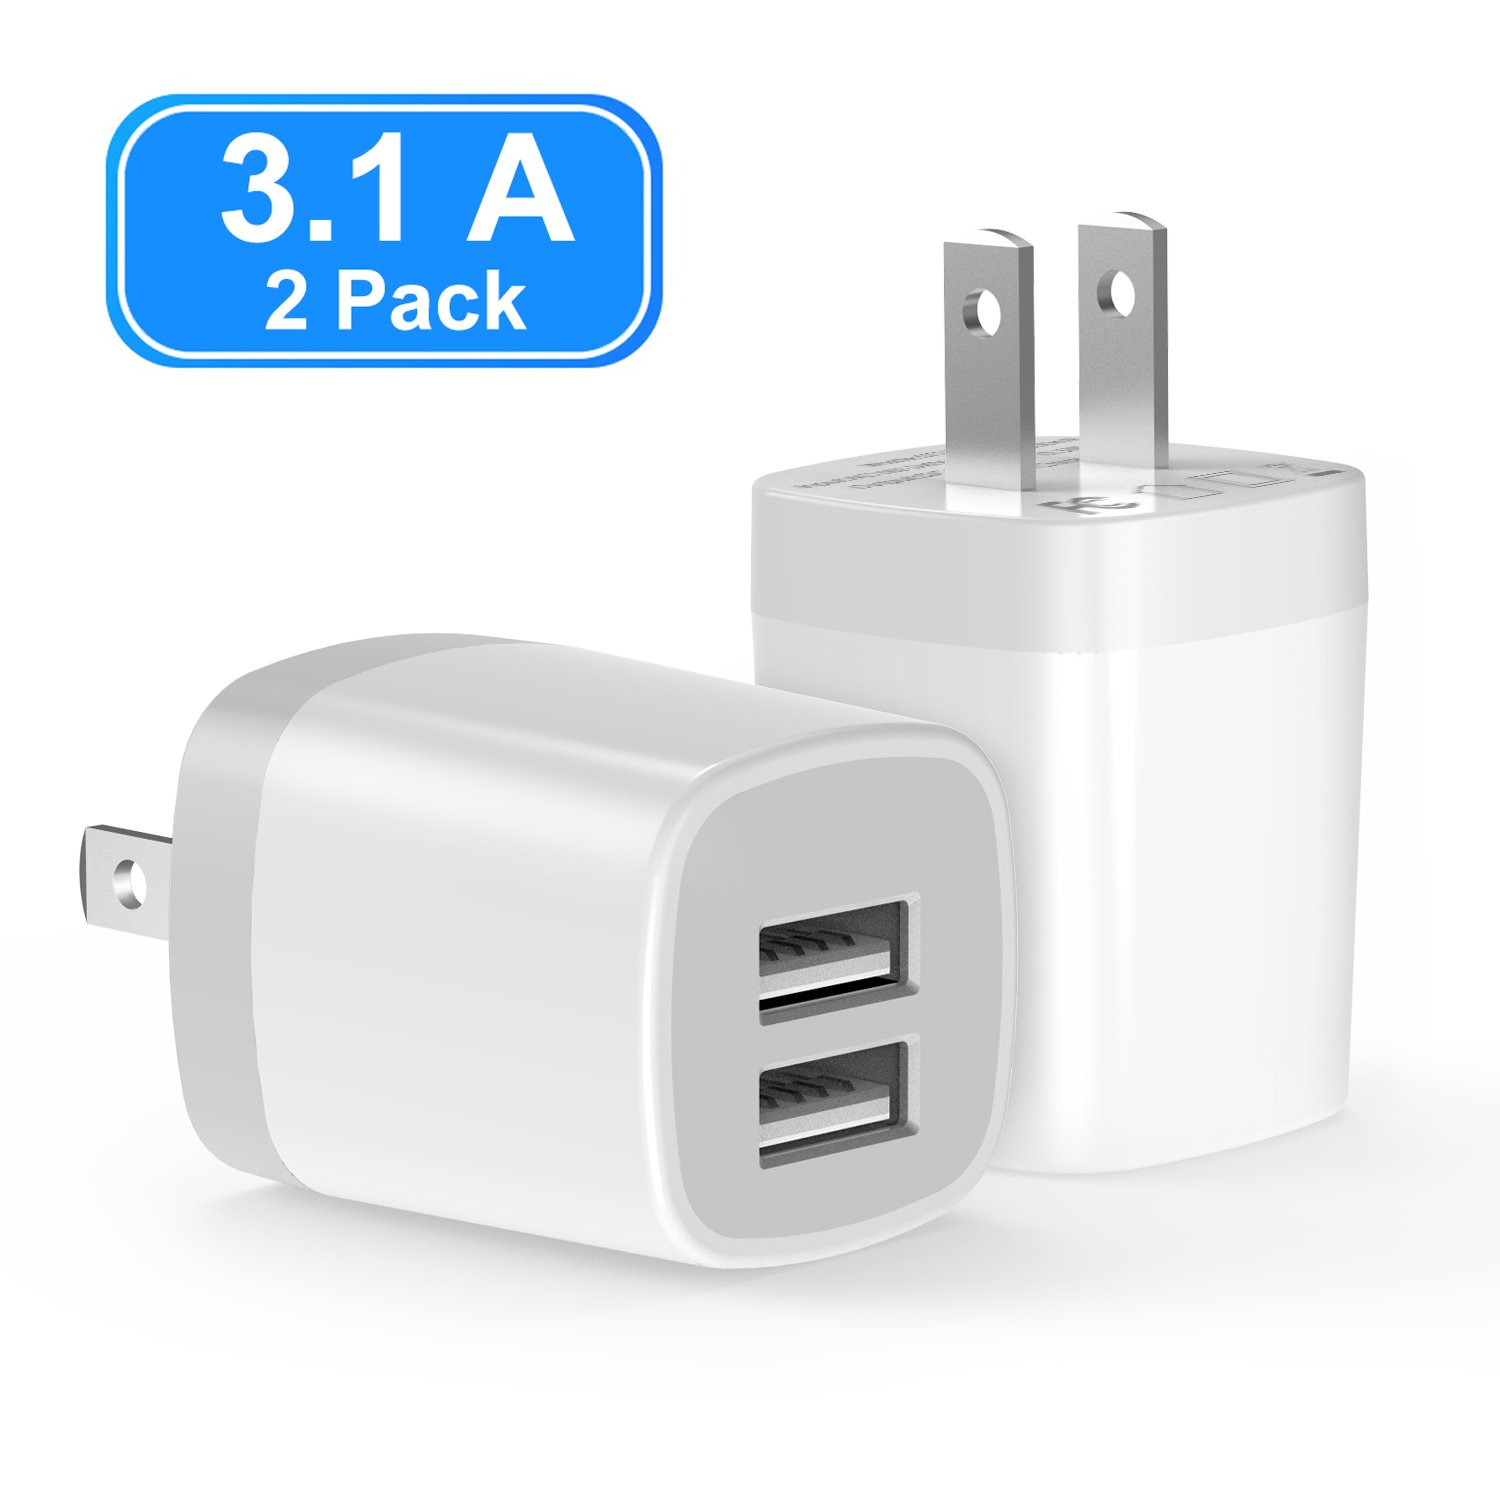 USB Wall Charger, Vogek 3.1A 2-Pack Dual Port USB Wall Charger Universal Power Adapter Compatible with Samsung Galaxy, LG, HTC, Huawei, Moto, Kindle, MP3, Bluetooth Speaker Headset-White